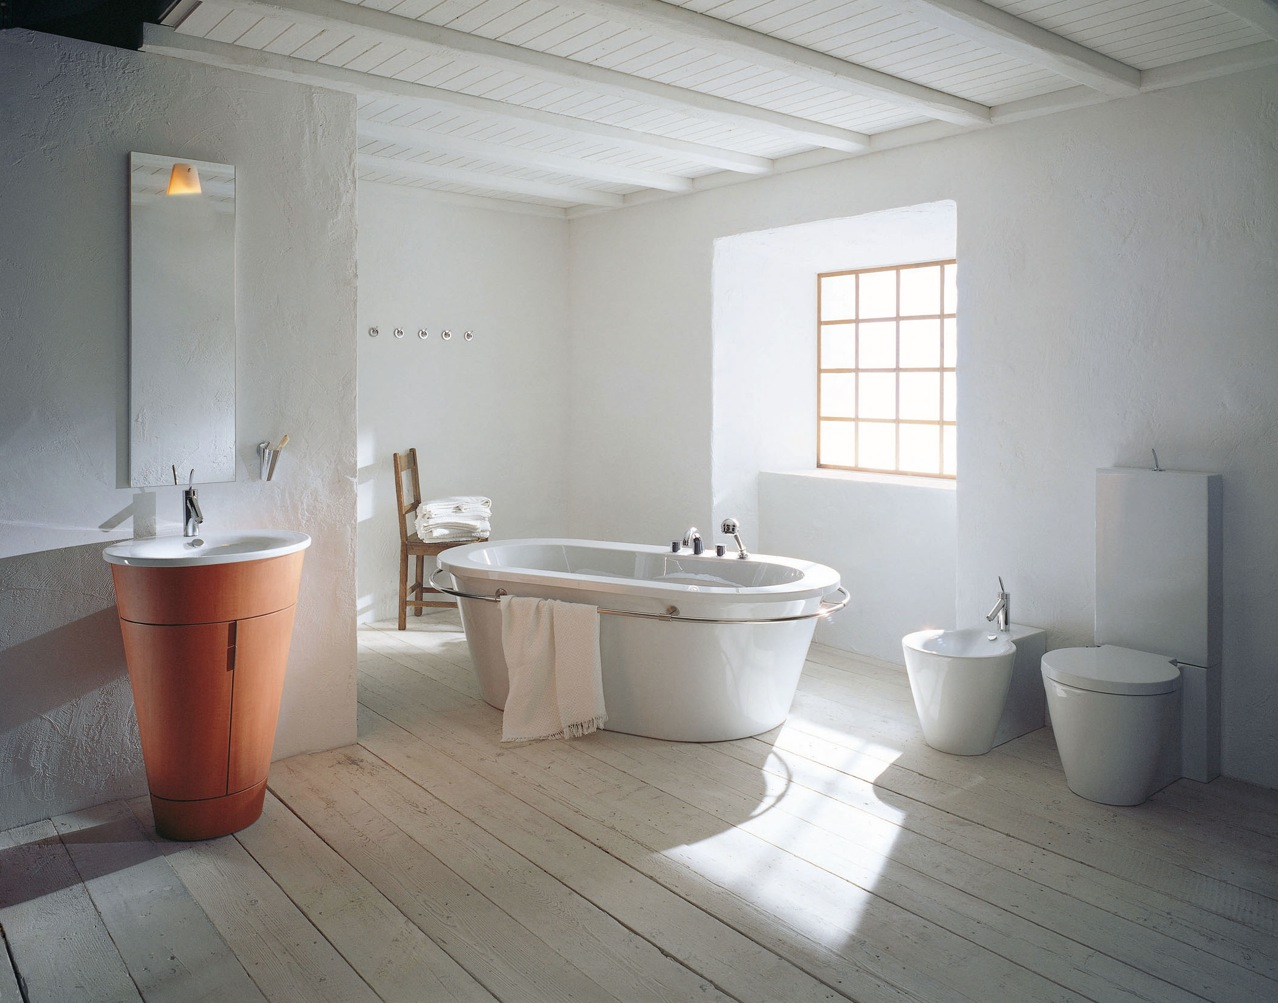 Philipe starck rustic modern bathroom decor interior for Bathroom styles and designs